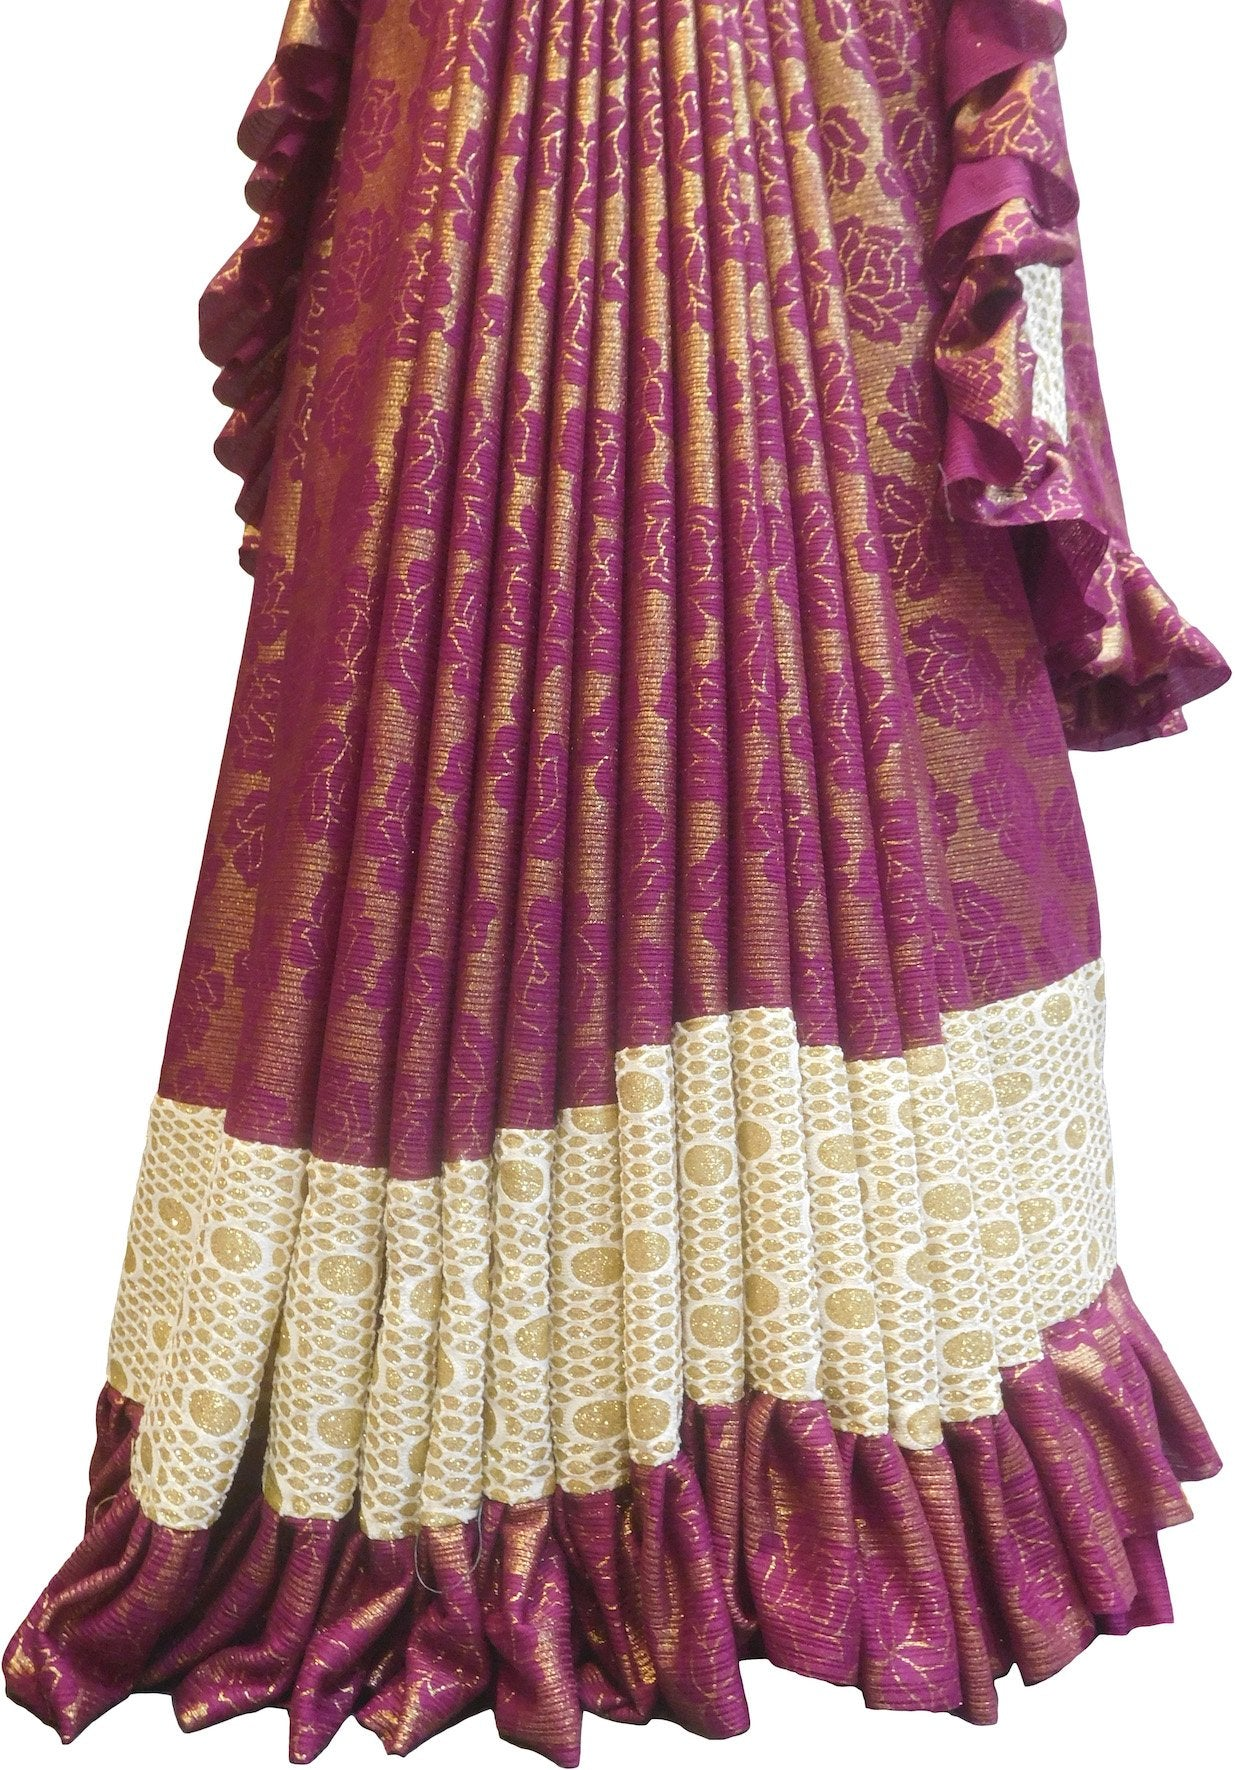 SMSAREE Wine Designer Wedding Partywear Georgette Frill Pattern Bridal Saree Sari With Blouse Piece F527